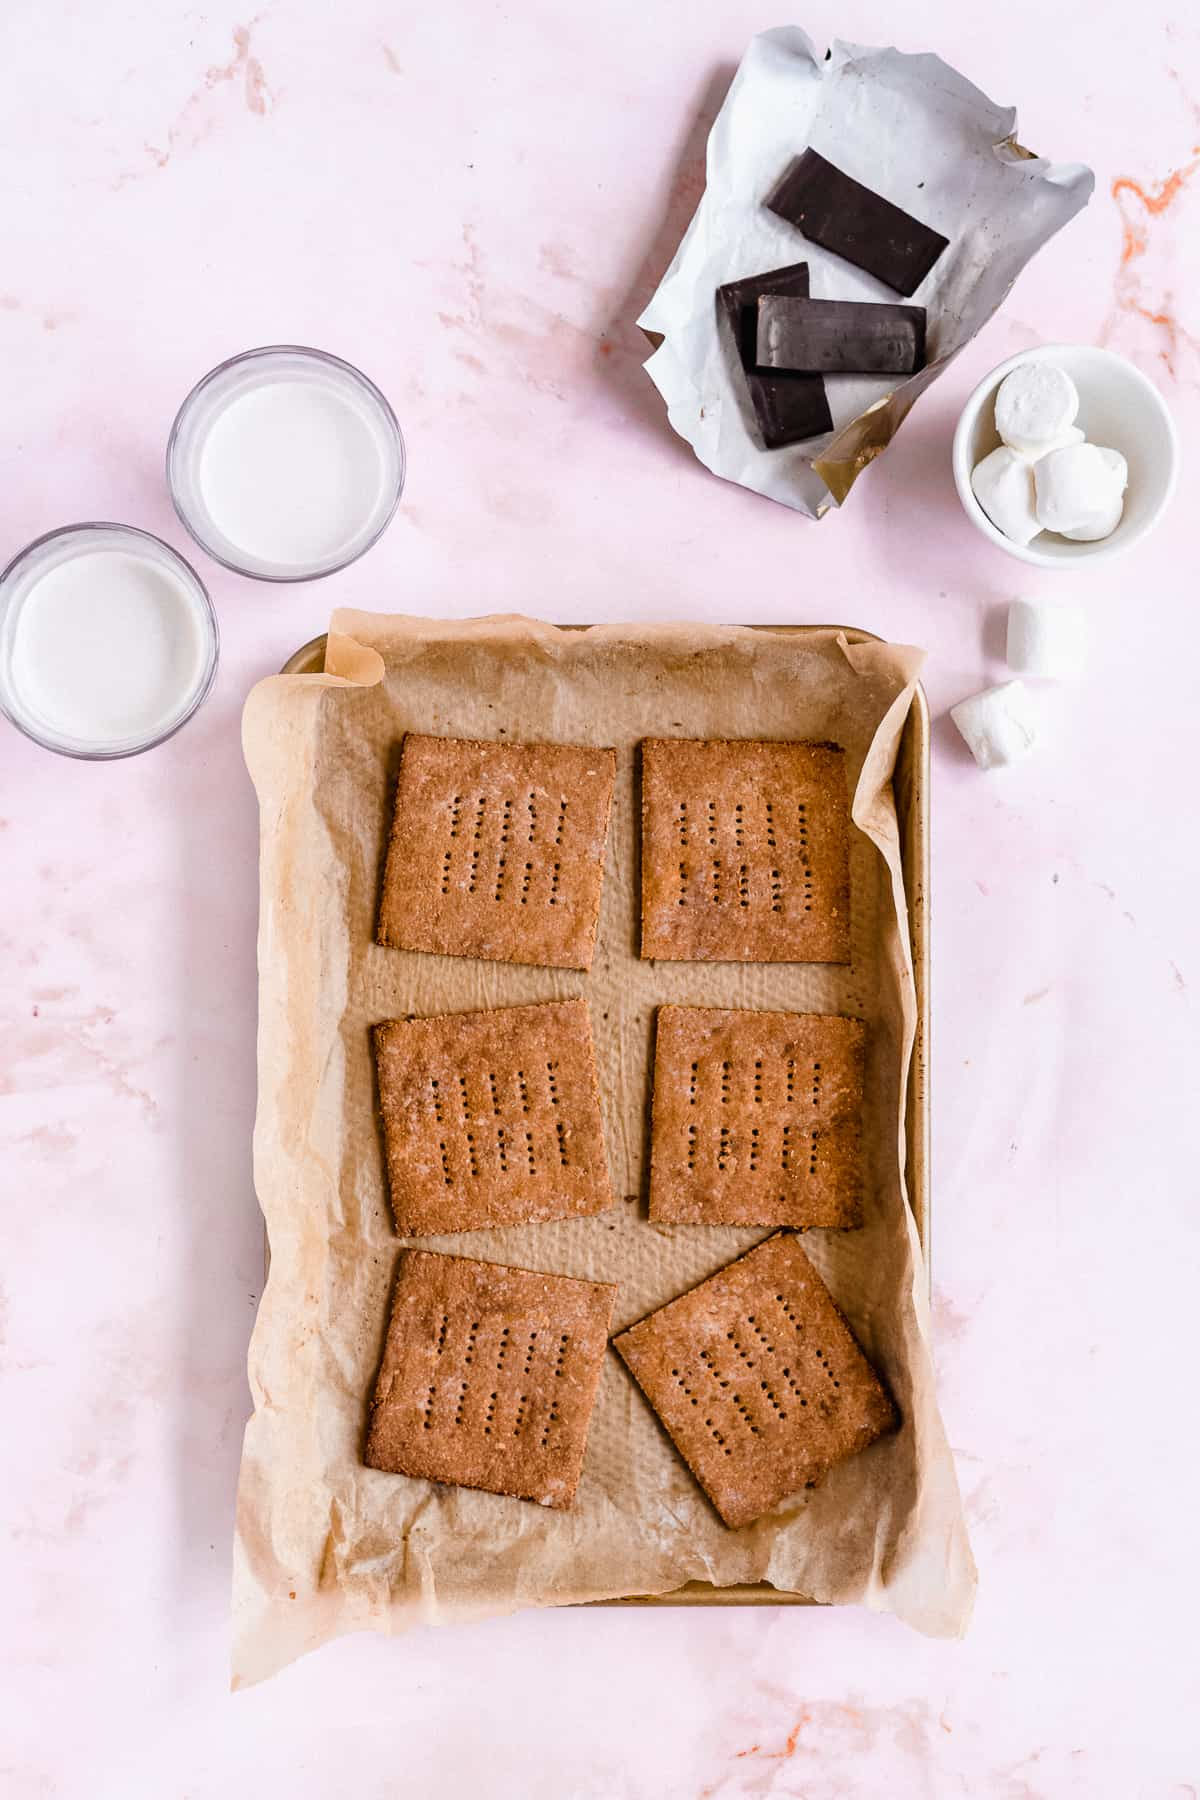 Overhead photo of freshly baked Homemade Graham Crackers on parchment paper on a baking sheet.  Two glasses of milk and some chocolate pieces and marshmallows are in the background.